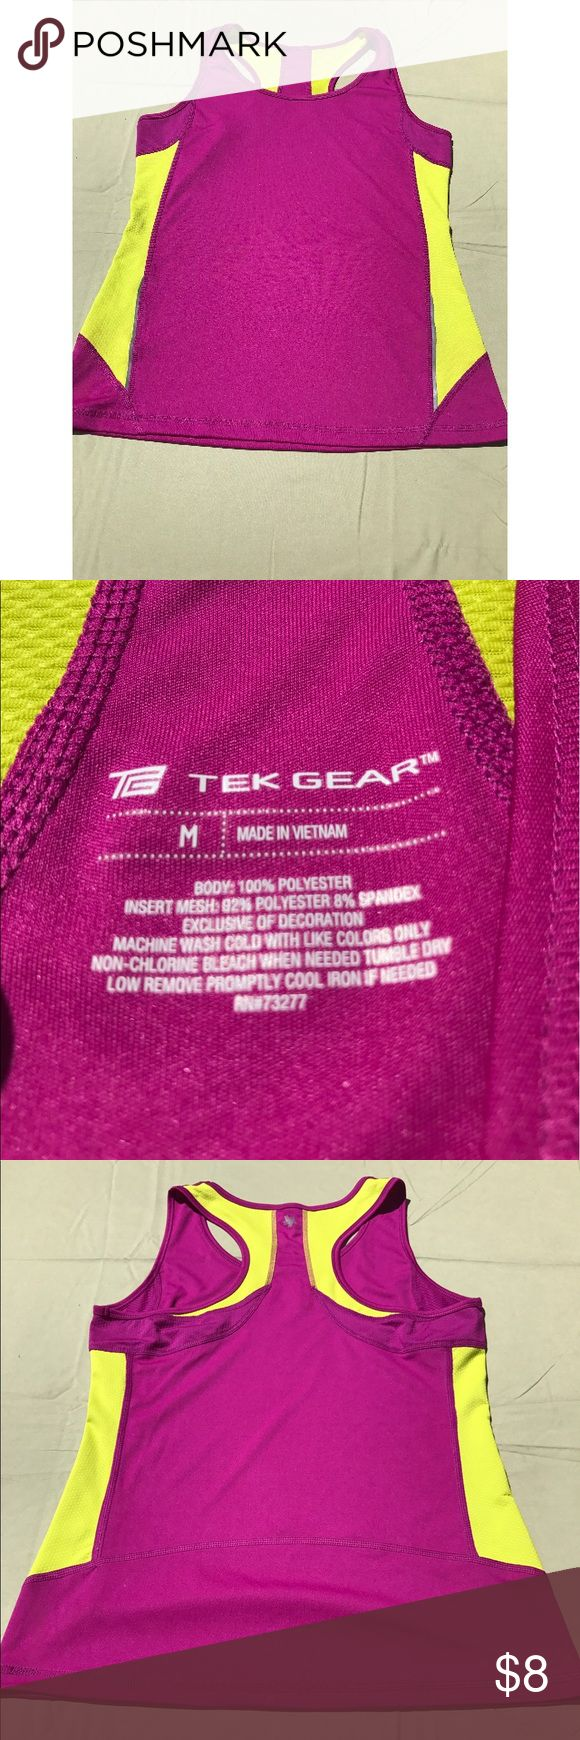 SPRING FITNESS SALE Athletic top size medium Loose fitting pink athletic top perfect for hiking or working out. Lightly used. Open to reasonable offers! tek gear Tops